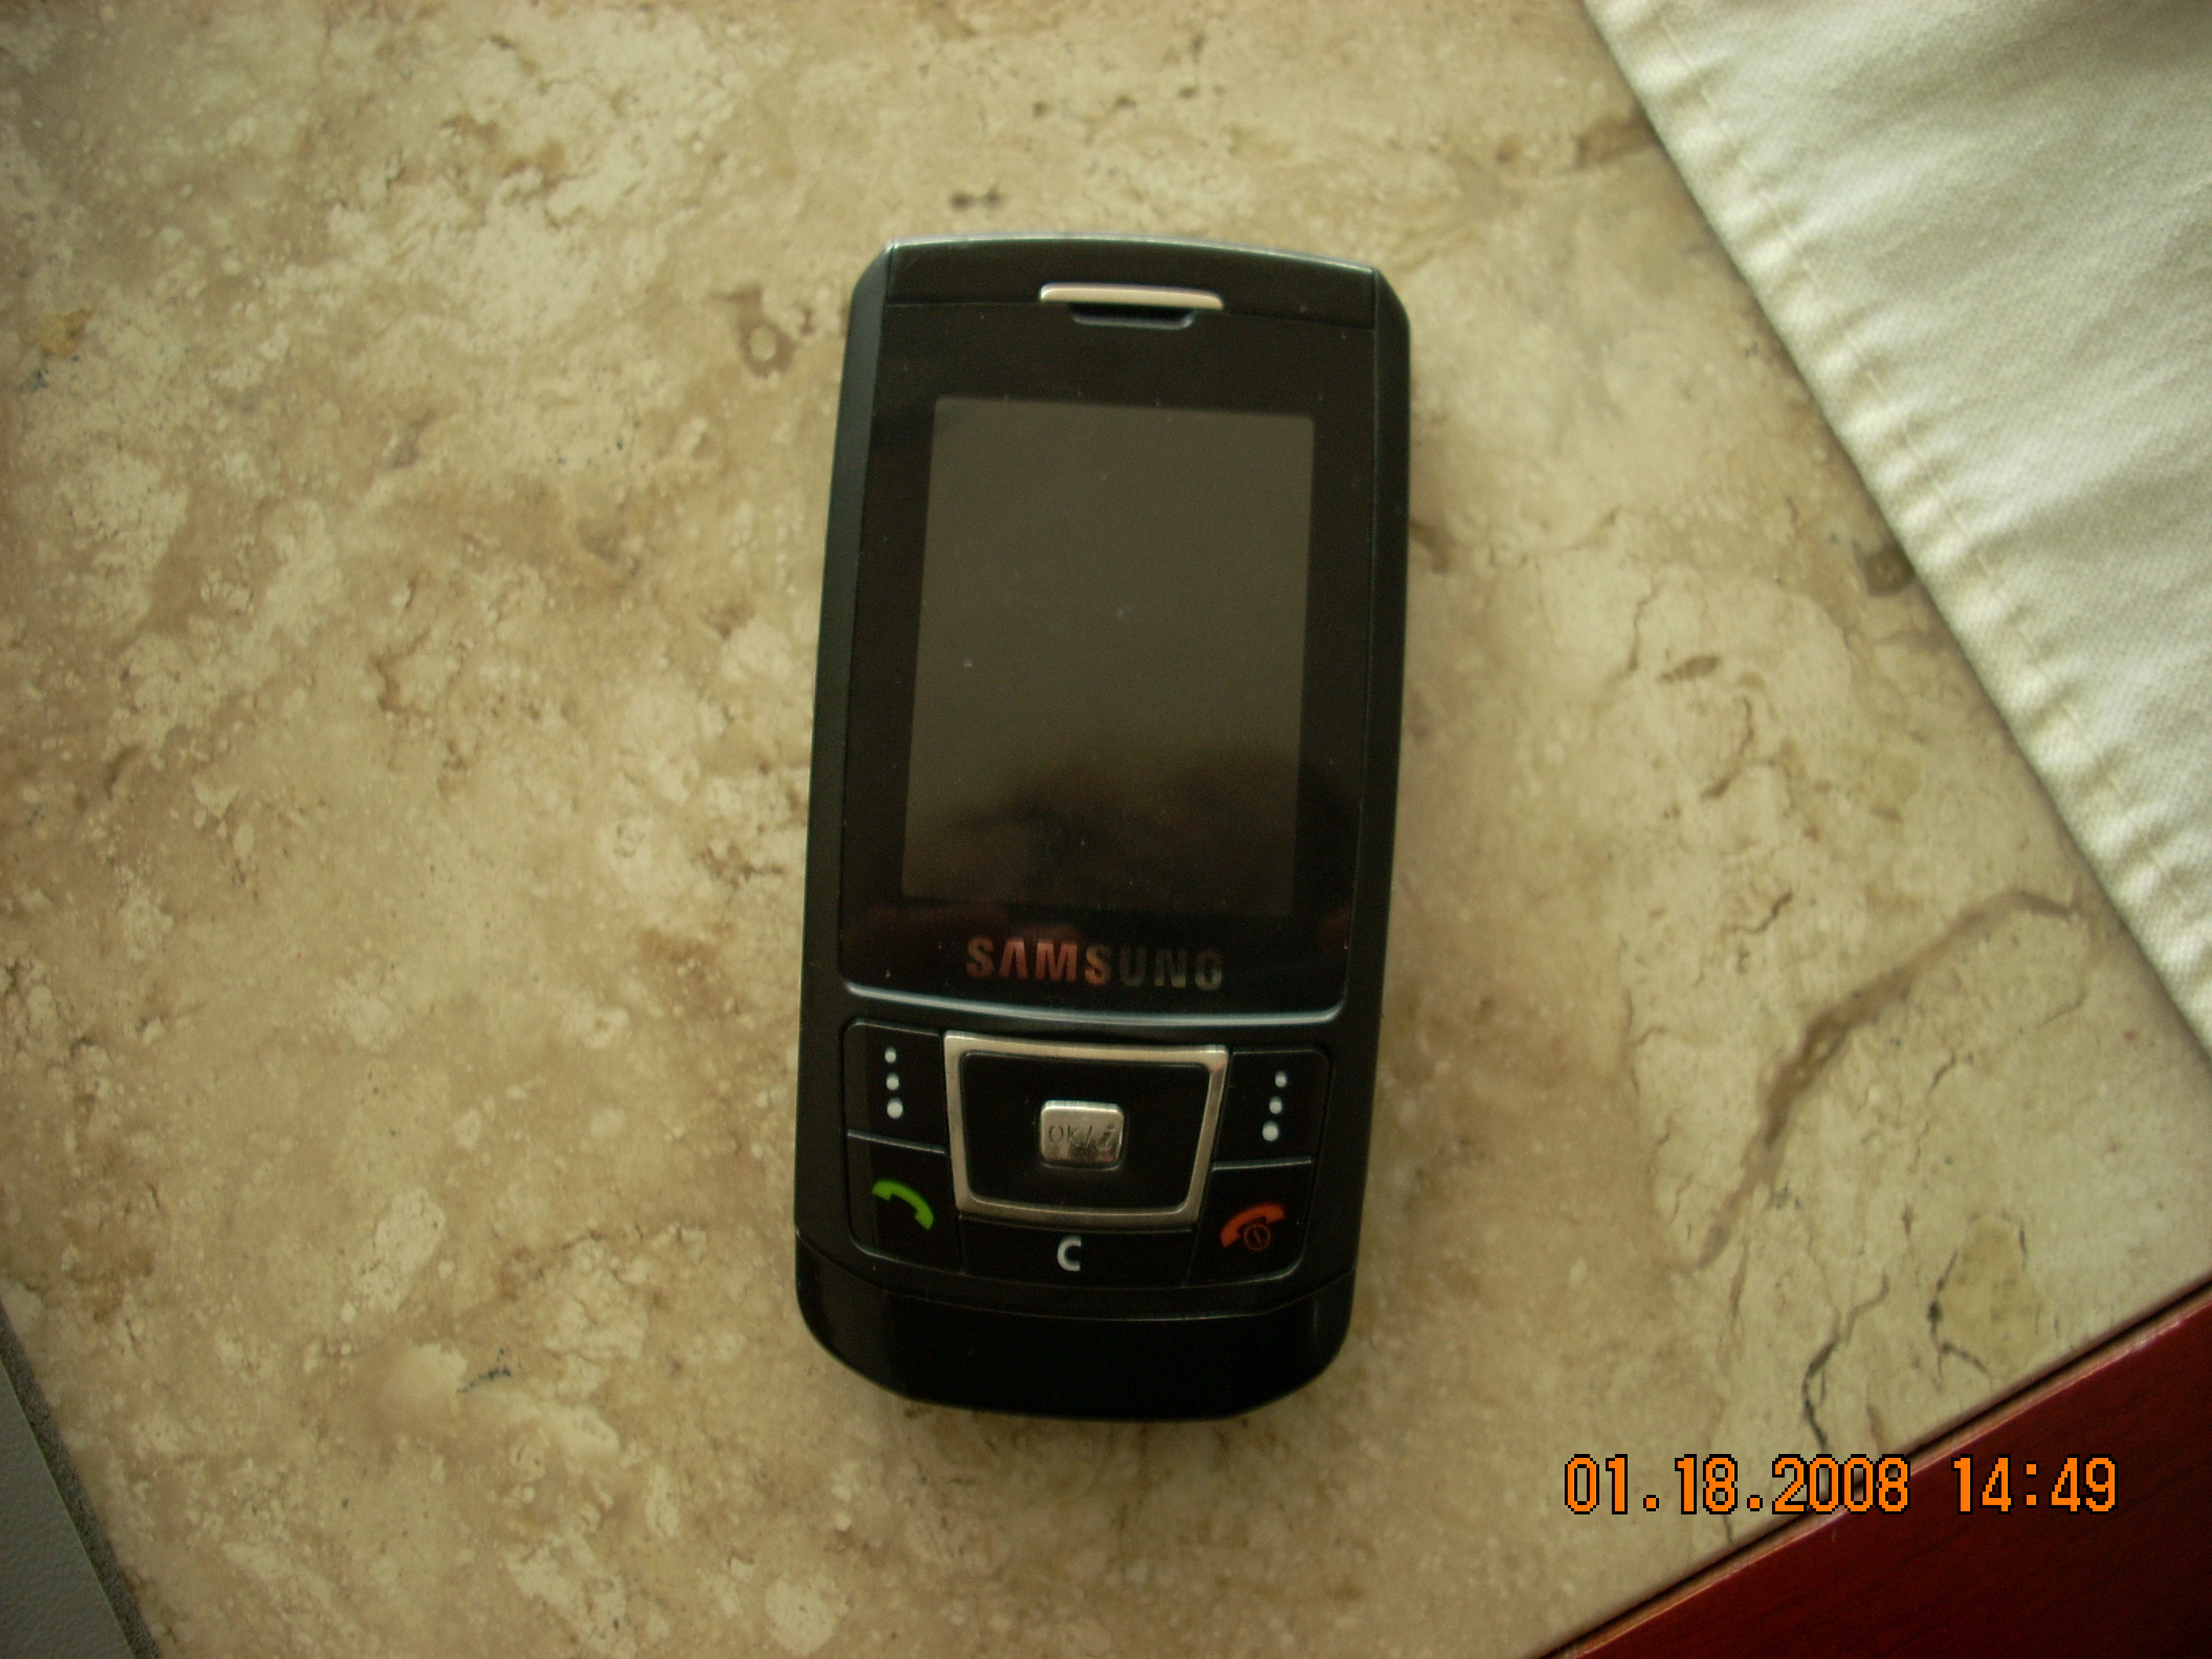 JAVA SAMSUNG TÉLÉCHARGER E250 UPLOADER